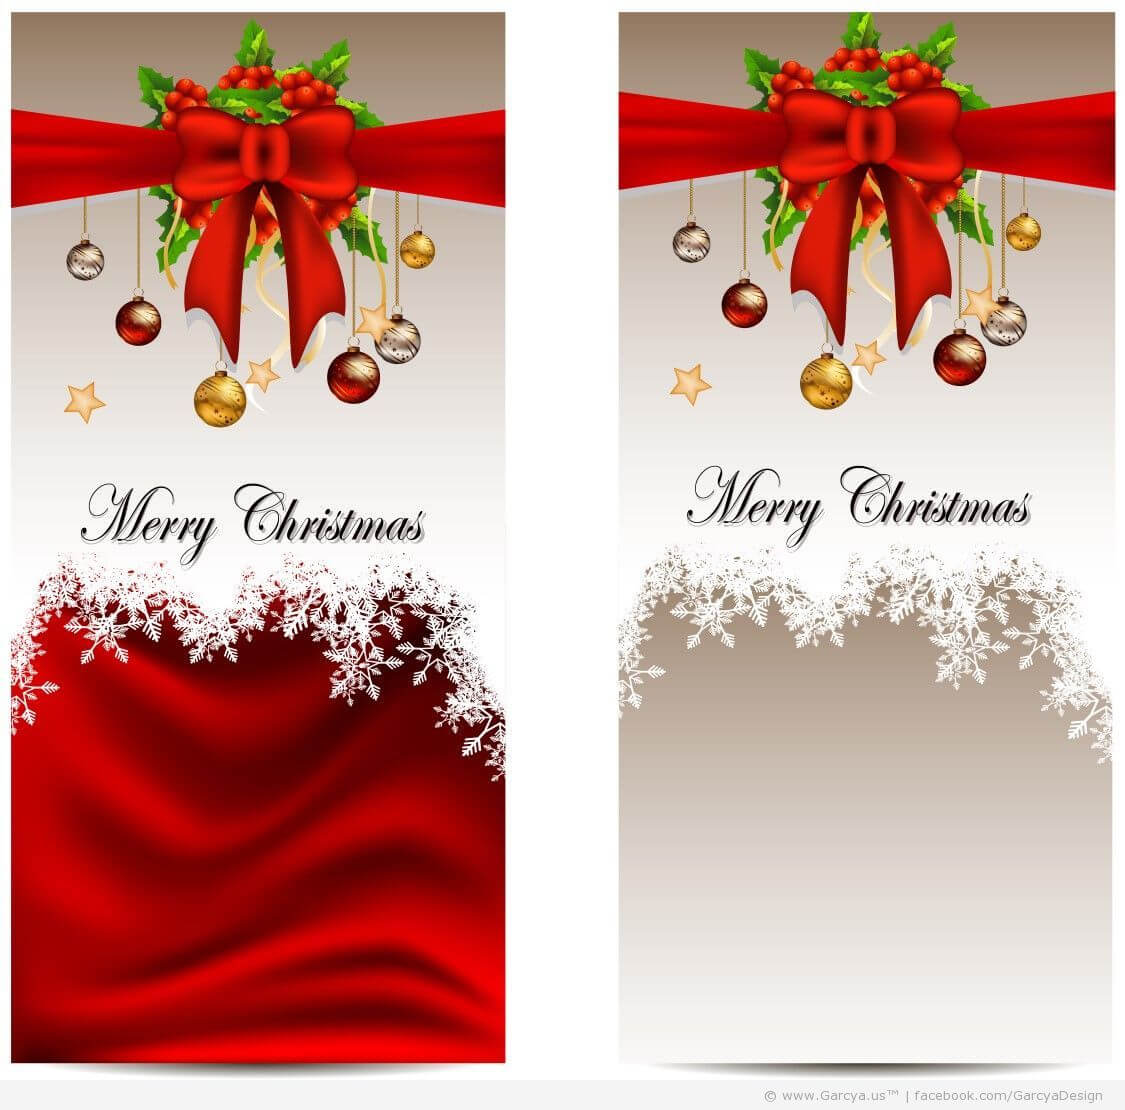 Christmas Card Templates | Christmas Card Templates – Free Intended For Christmas Photo Cards Templates Free Downloads